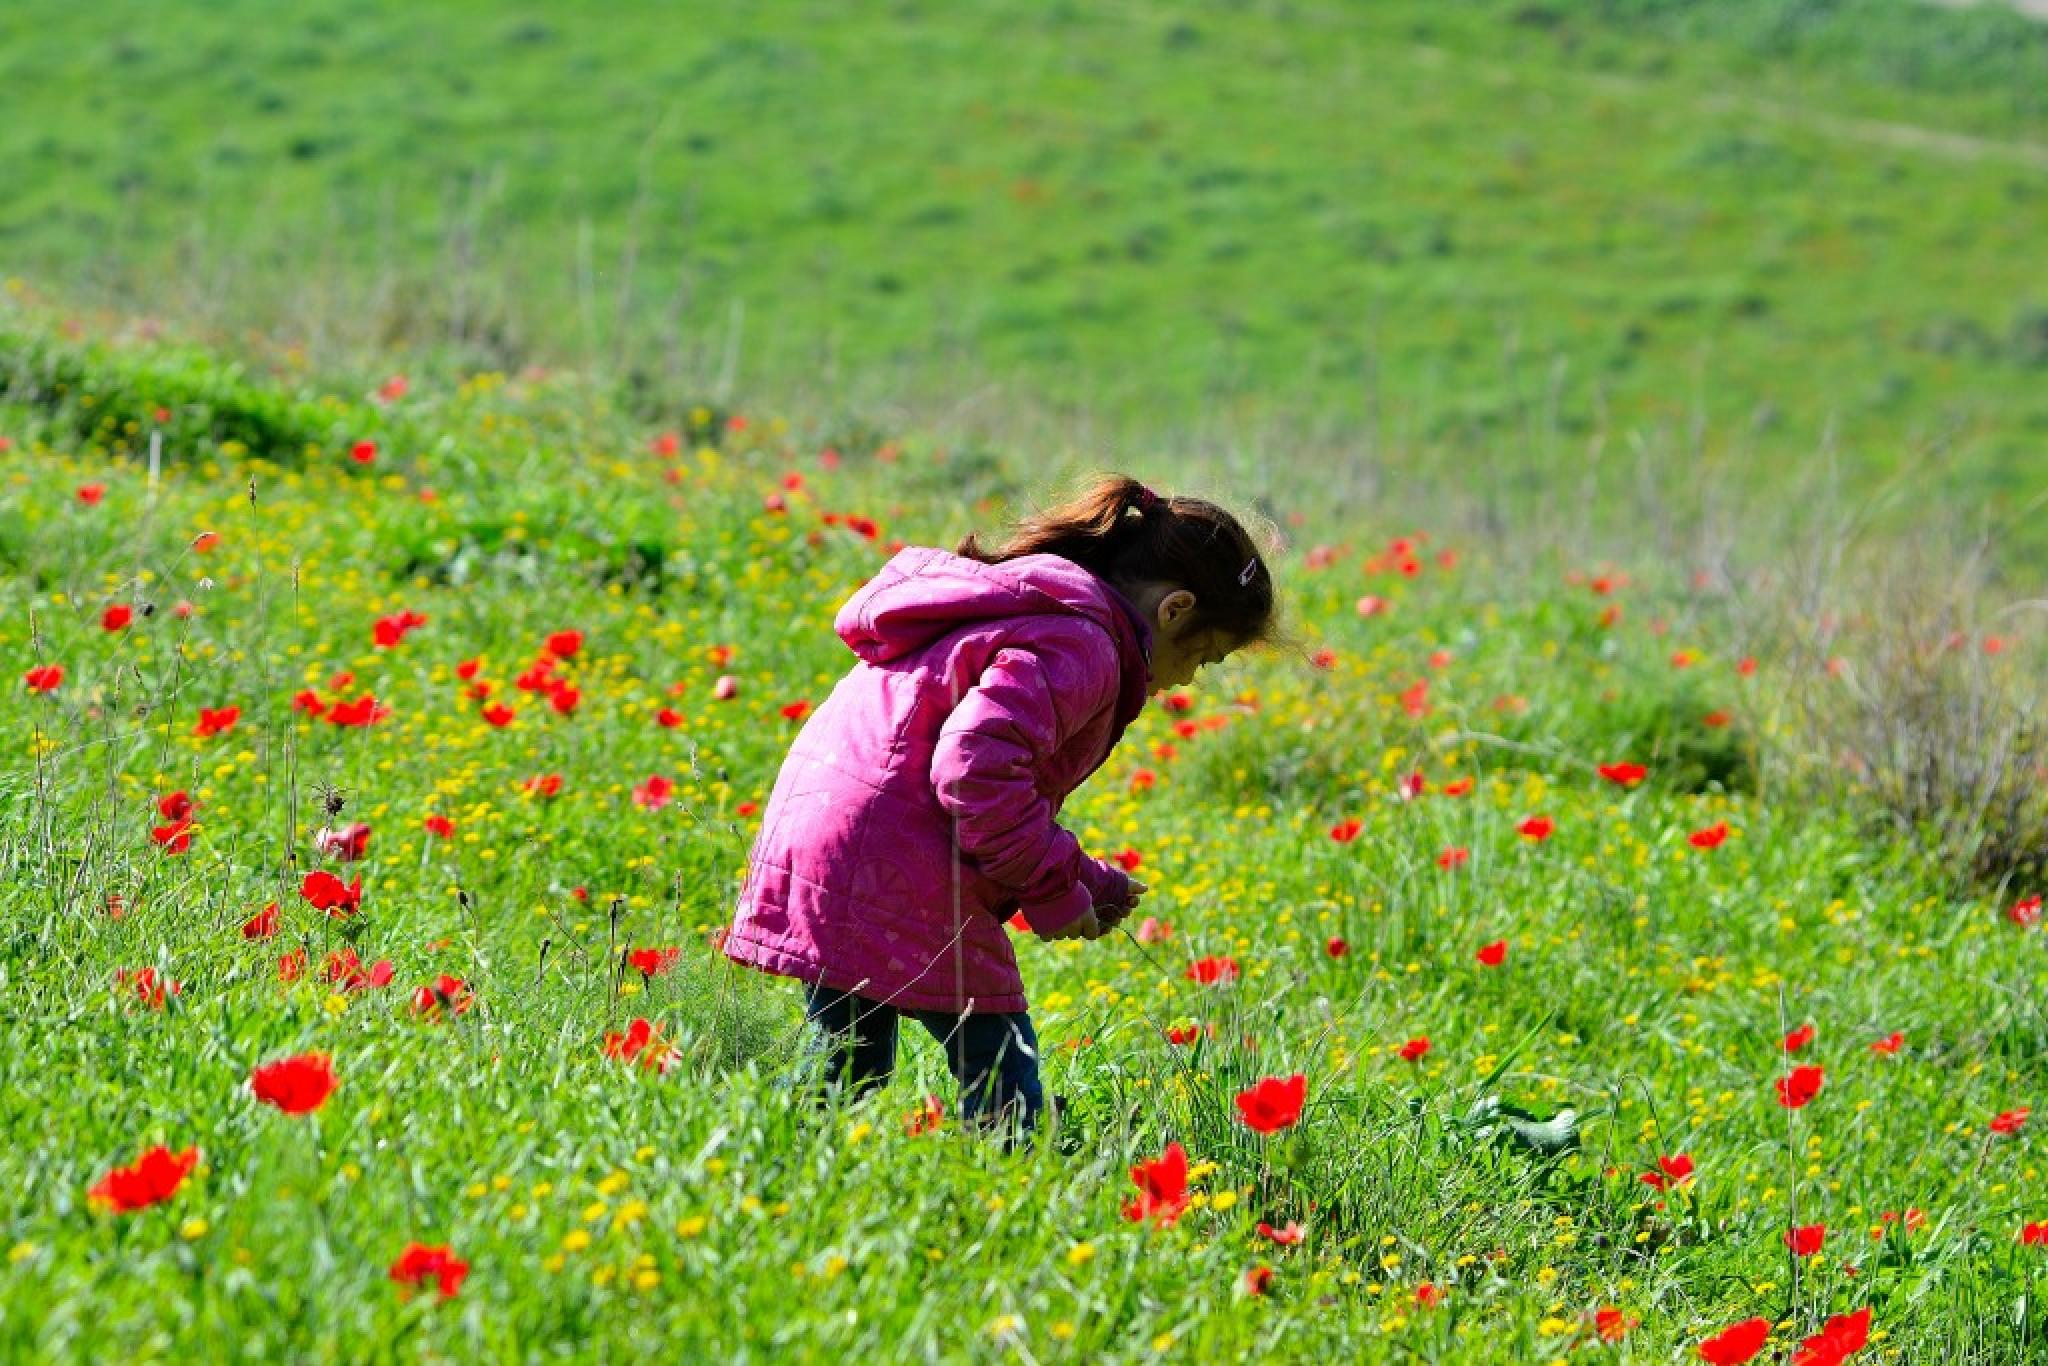 Children and flowers, there is more beautiful combination between them? by אשר שמולביץ